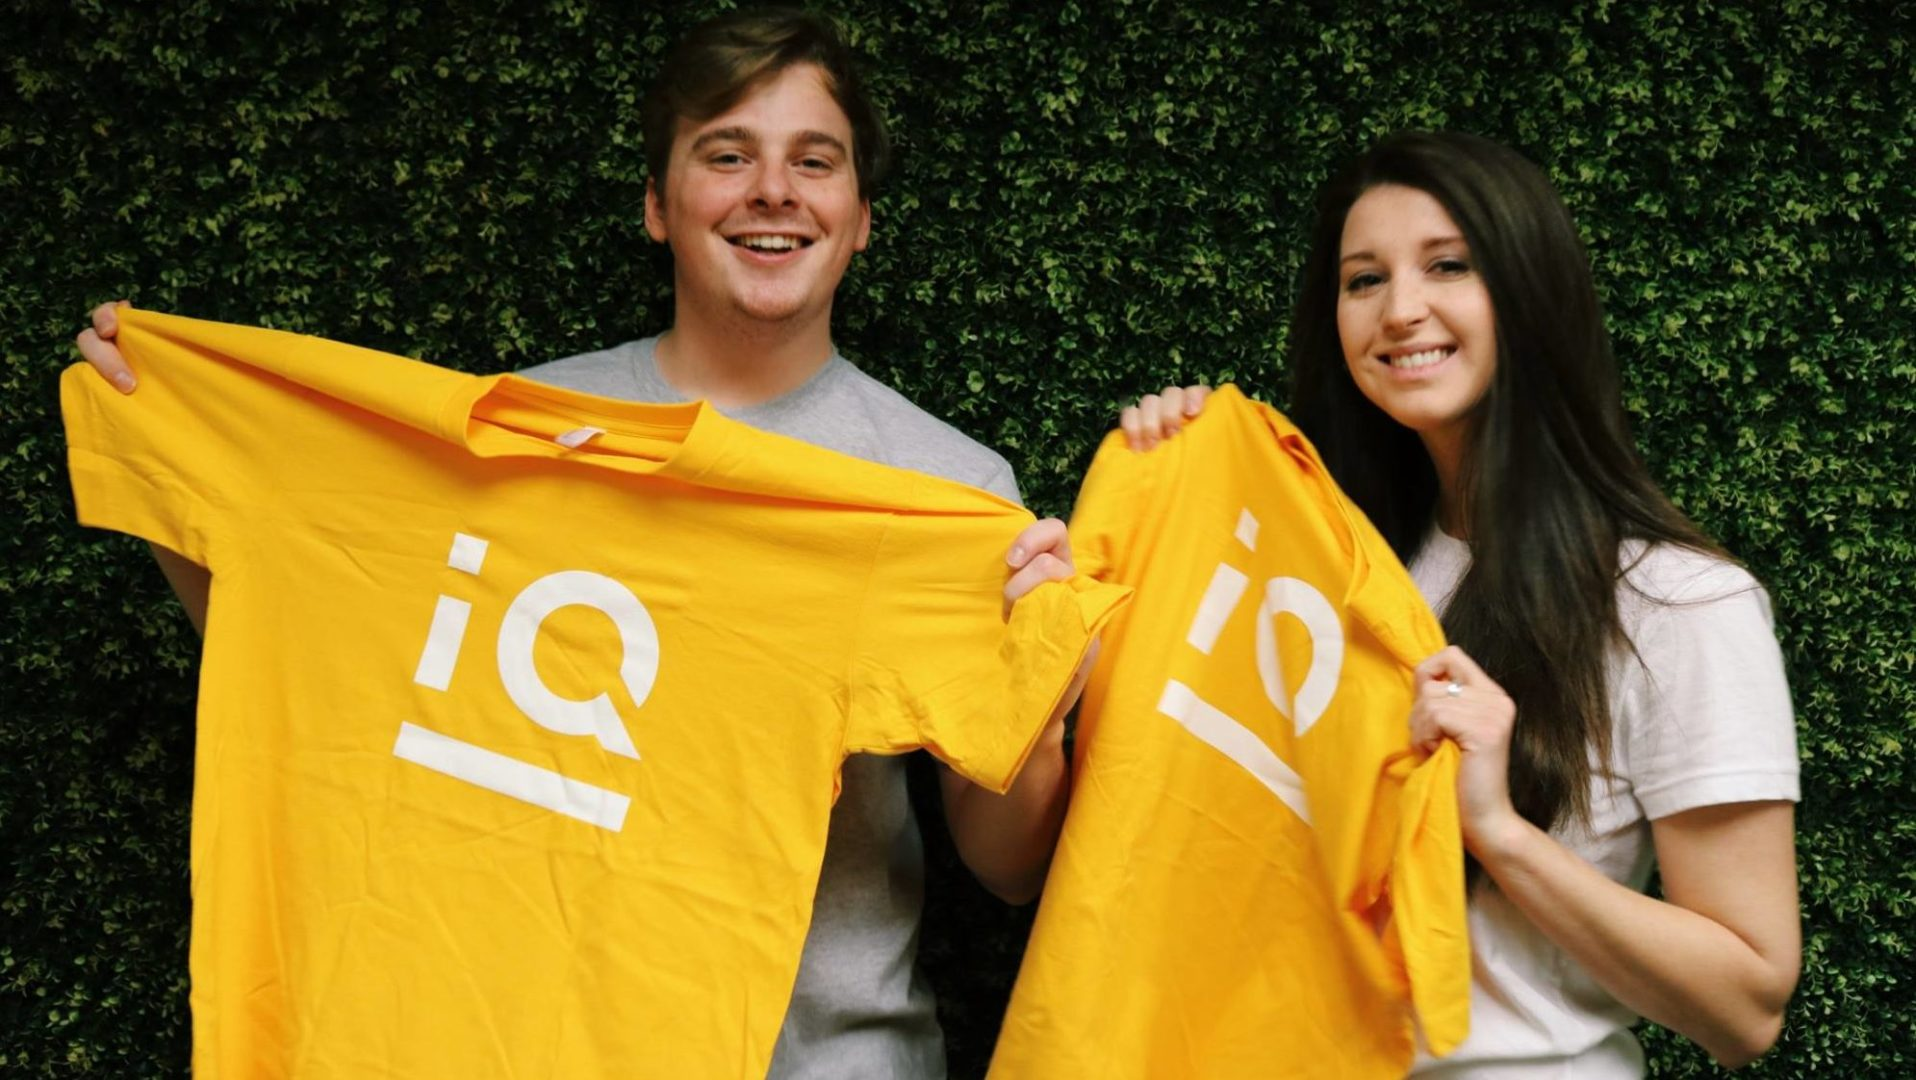 Insynq logo yellow shirt boy and girl image